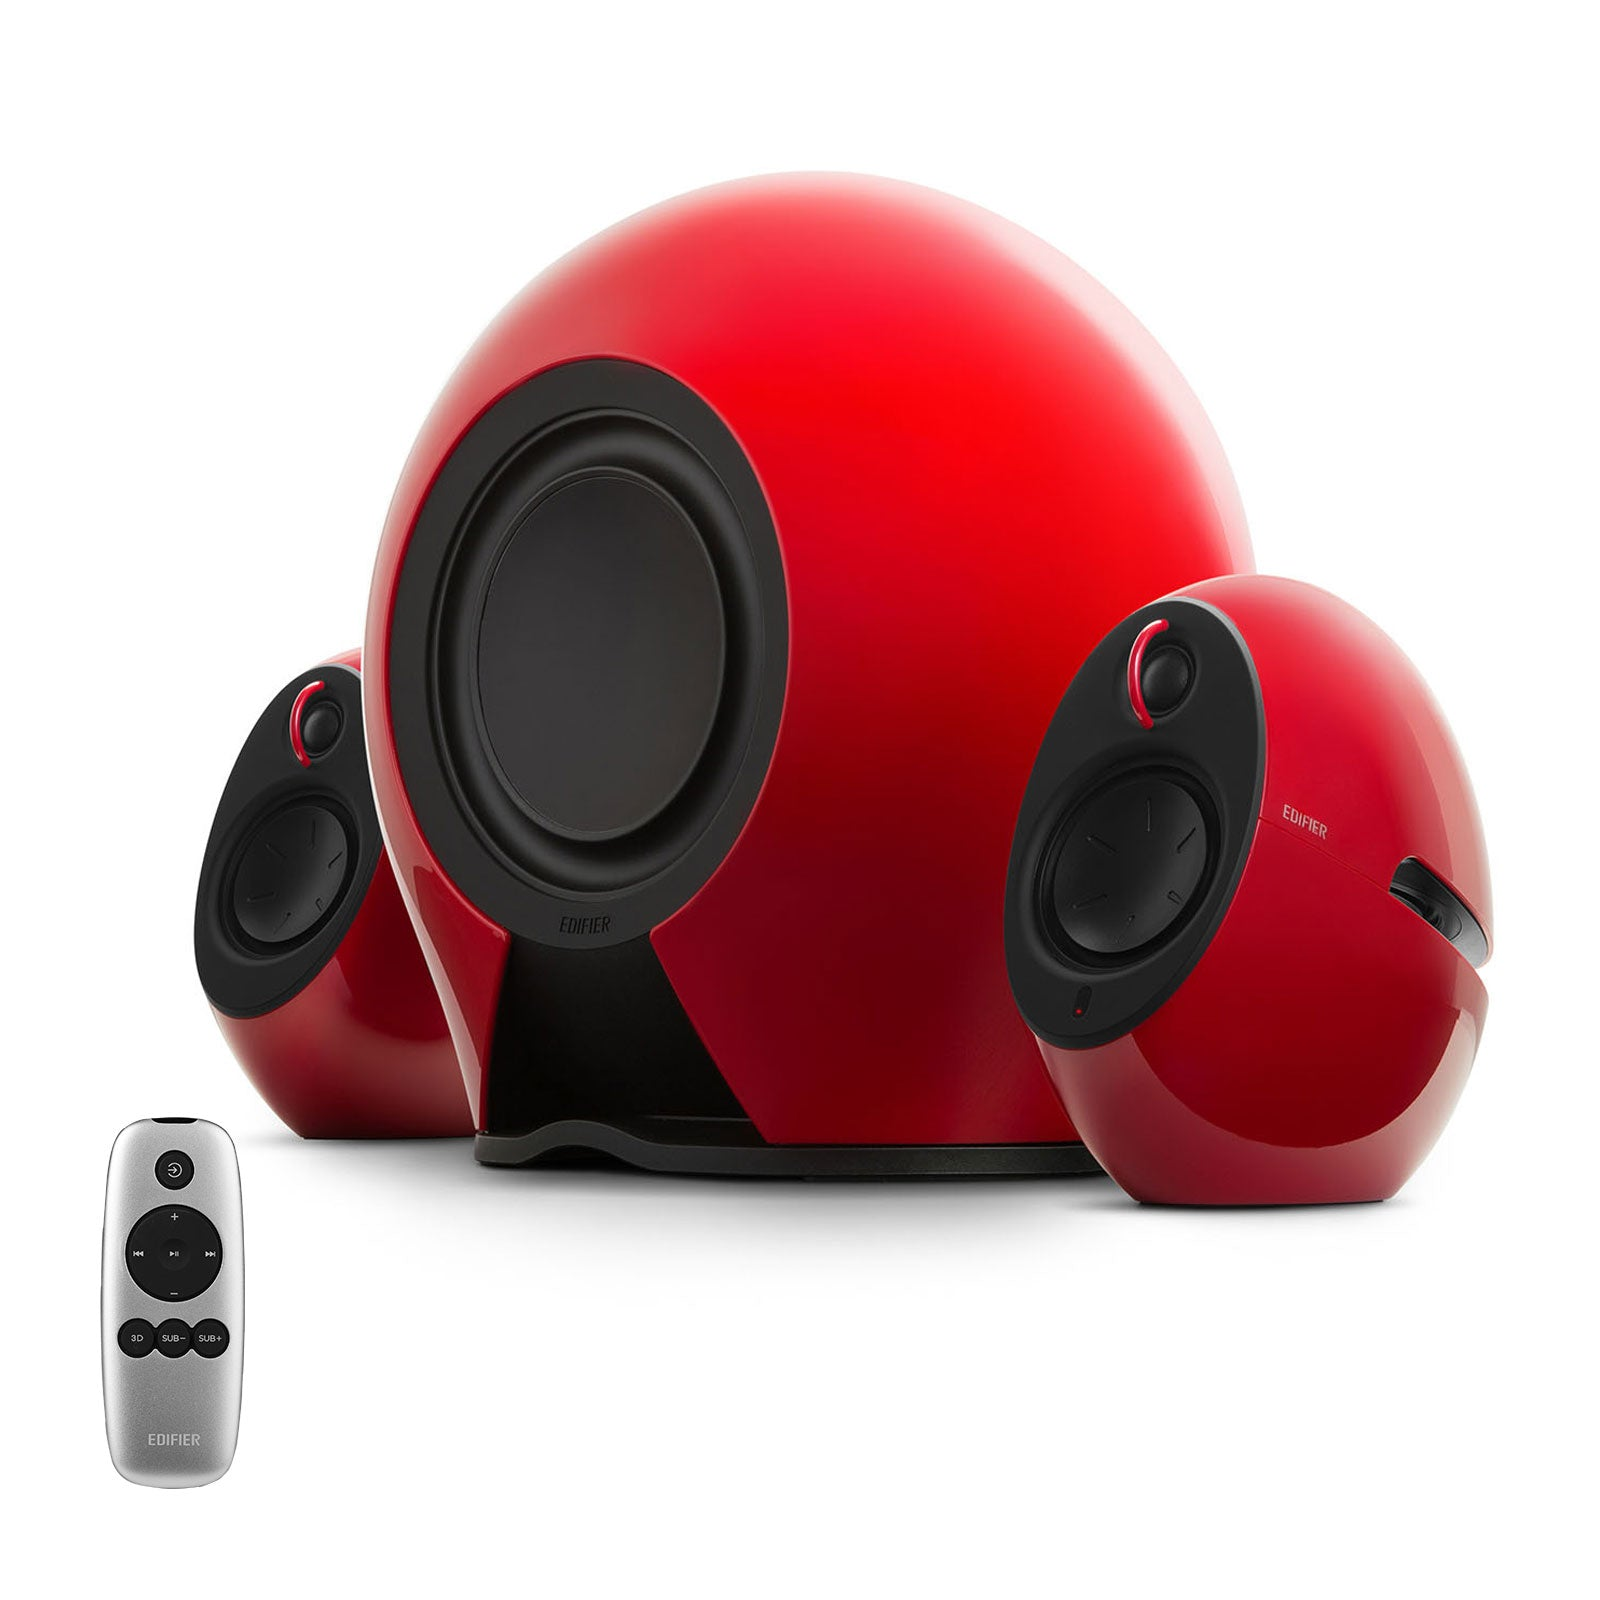 Edifier e235 Bluetooth Speaker System - 2.1 Speakers with Wireless Subwoofer